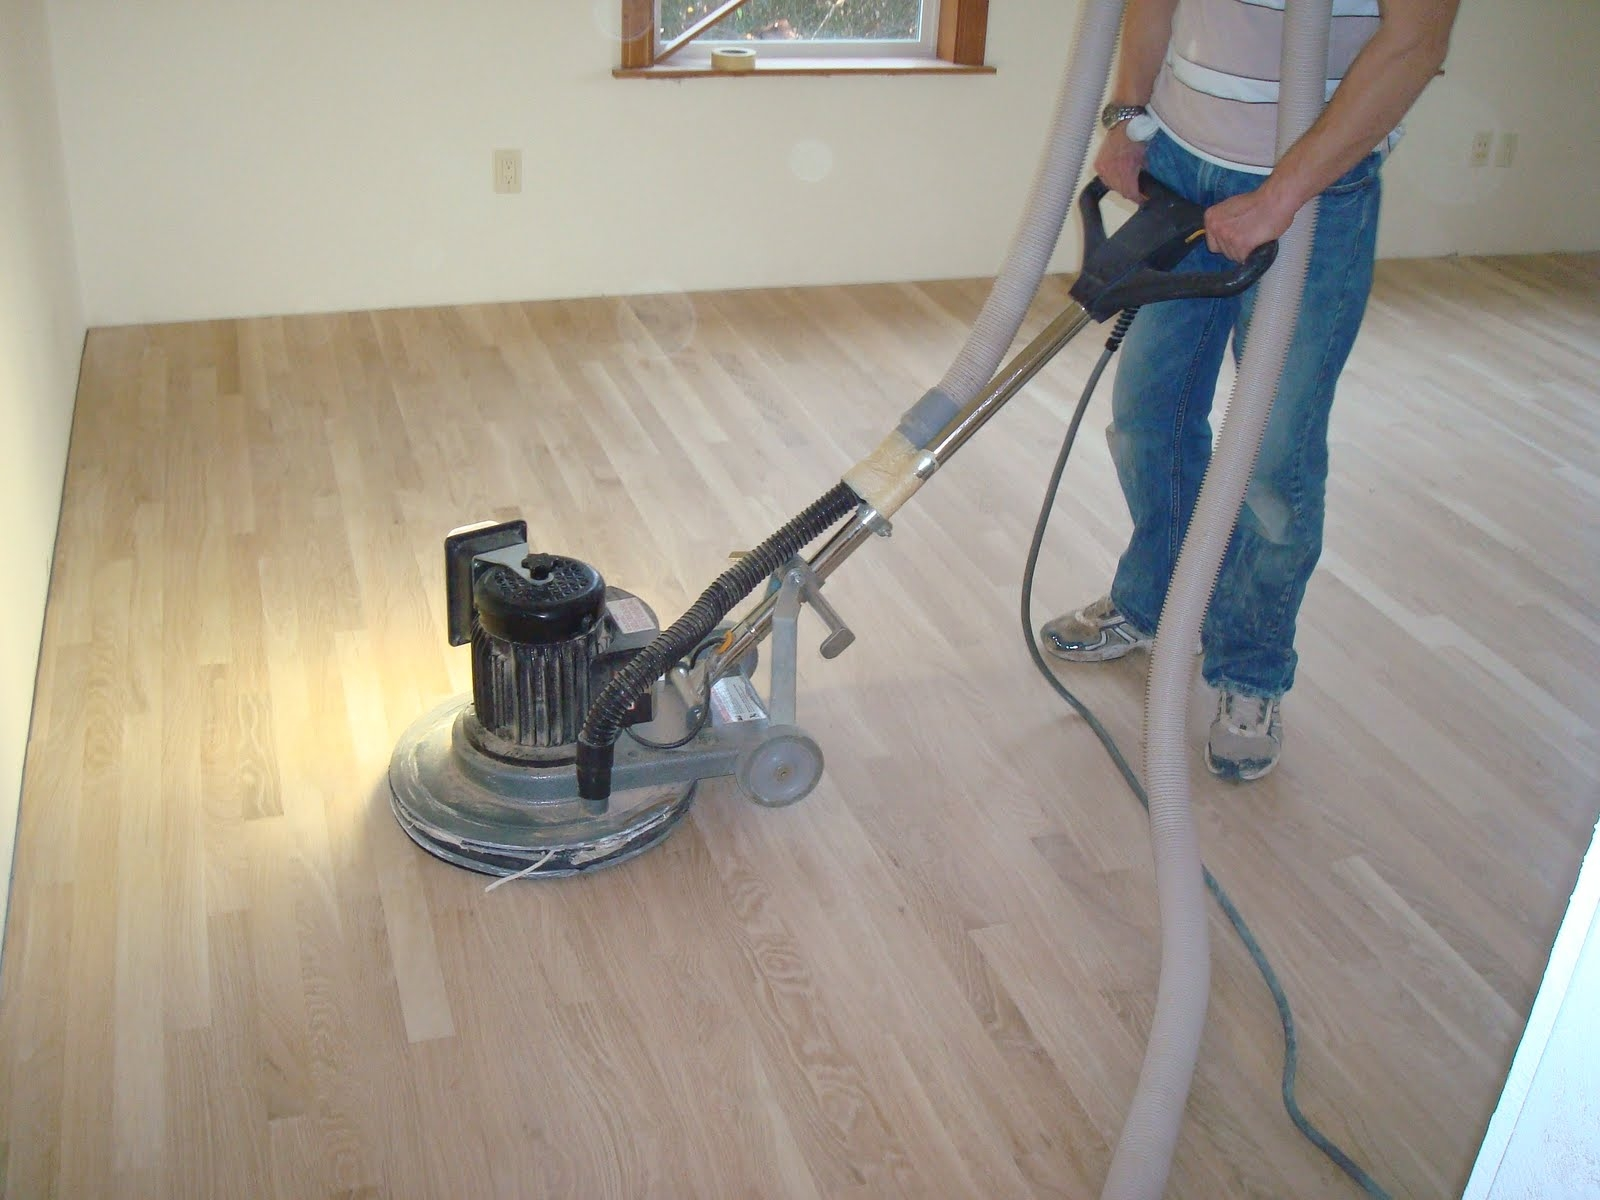 Wood Floor Buffers For The Home